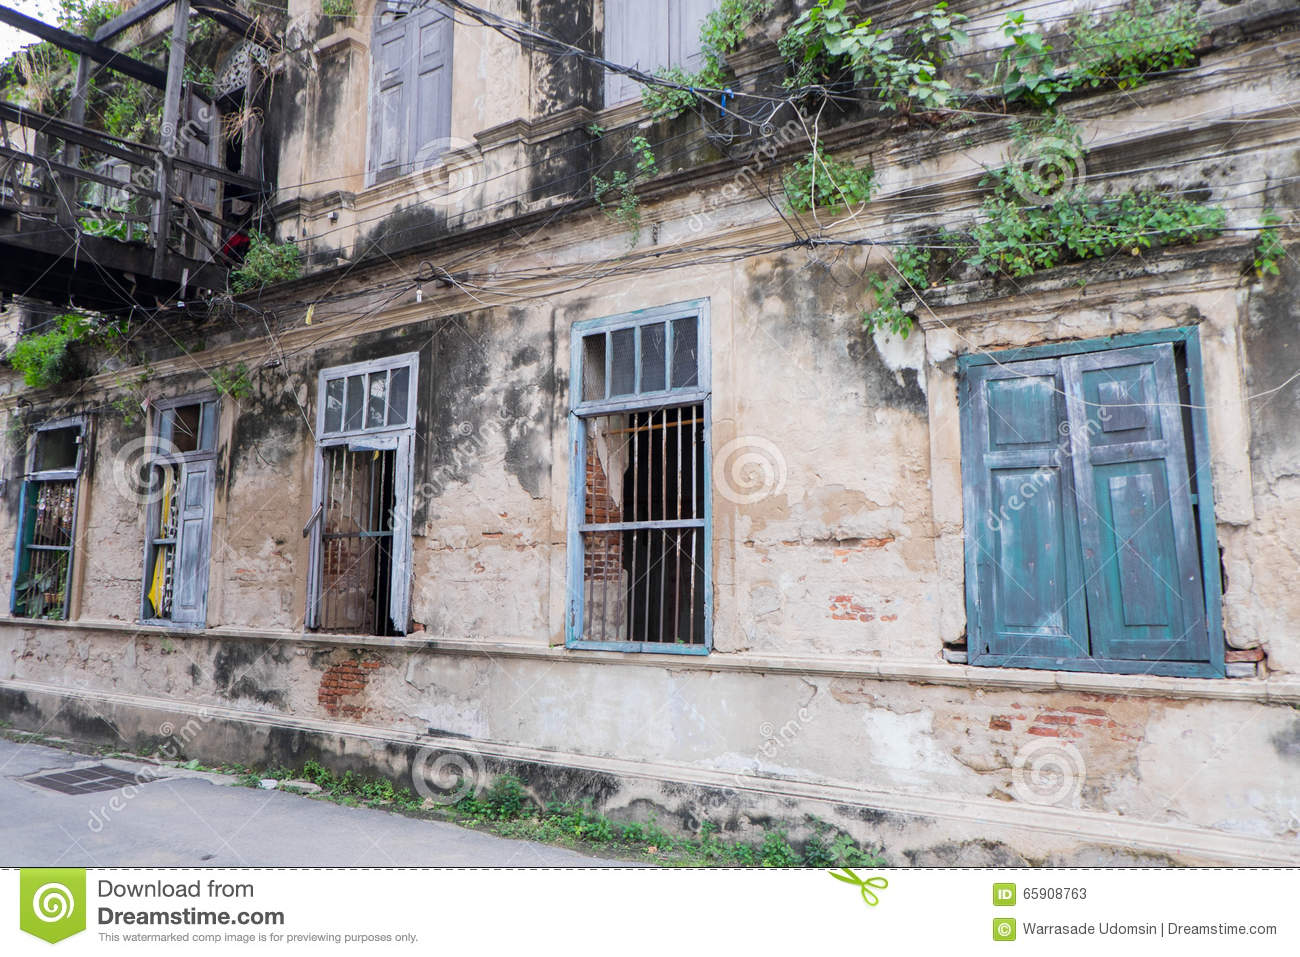 The Old Customs House, Thailand Stock Photo - Image: 65908763